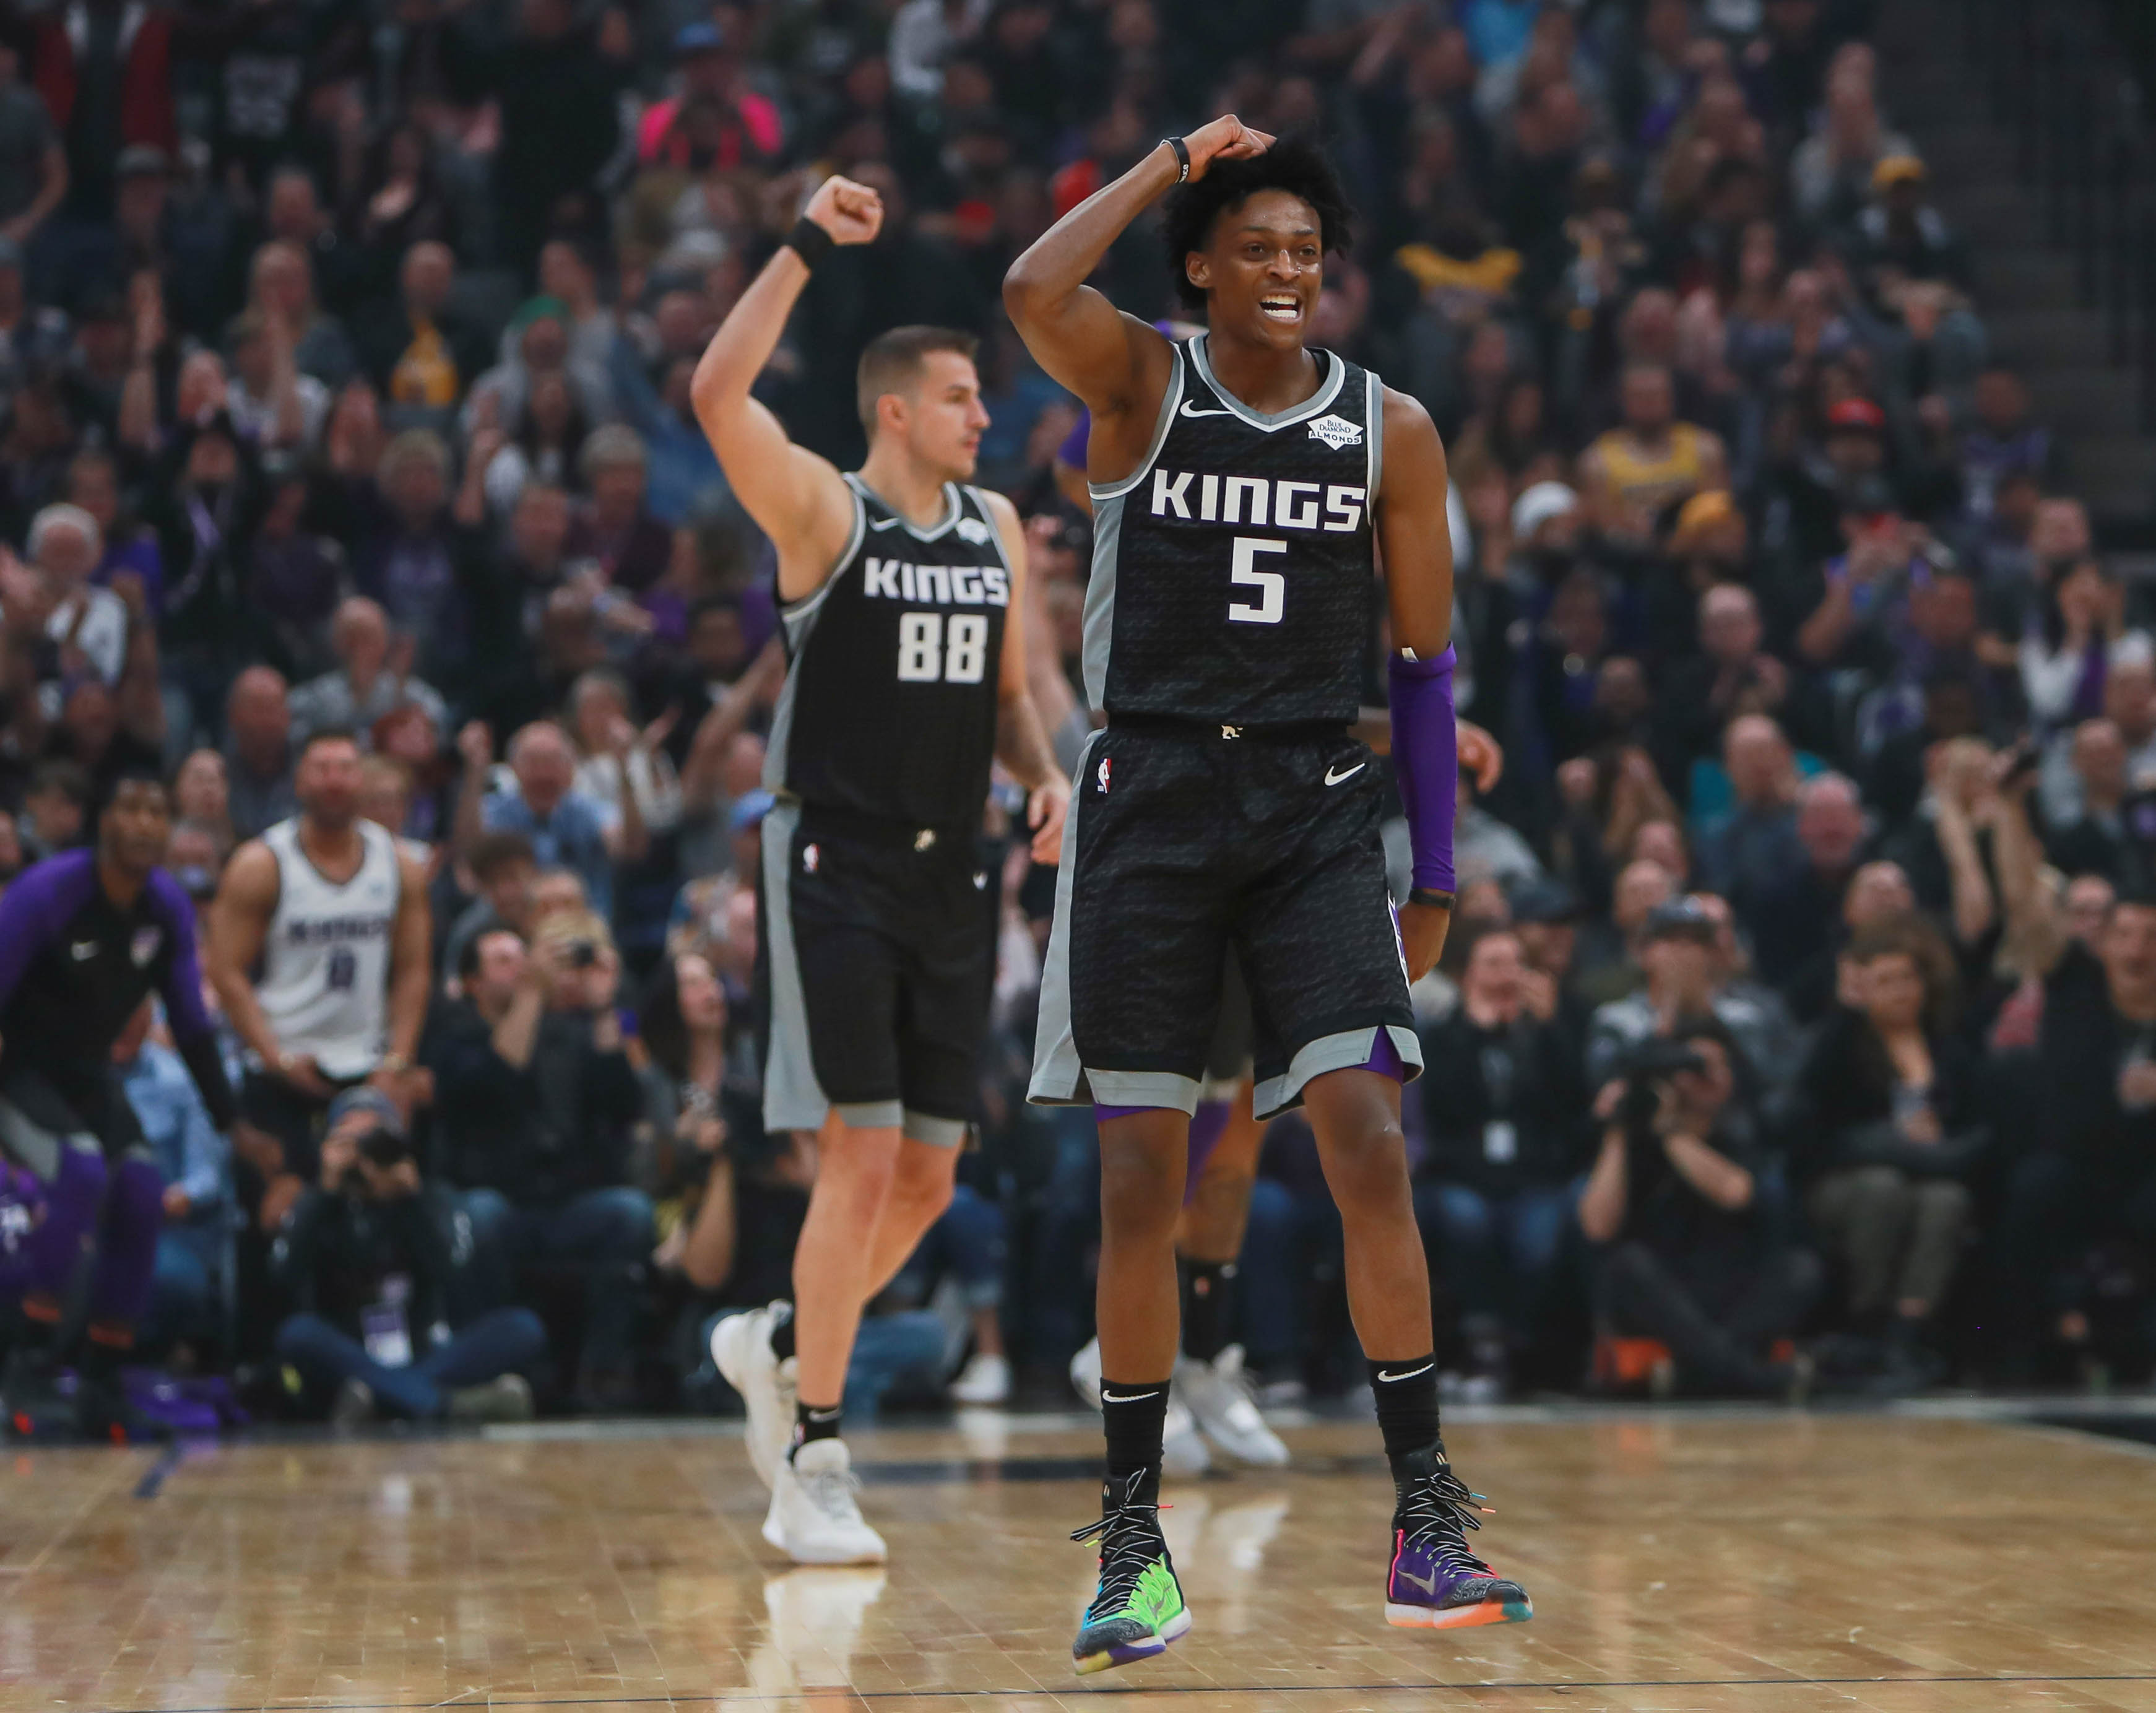 Top reasons why De'Aaron Fox will become the best player in his class